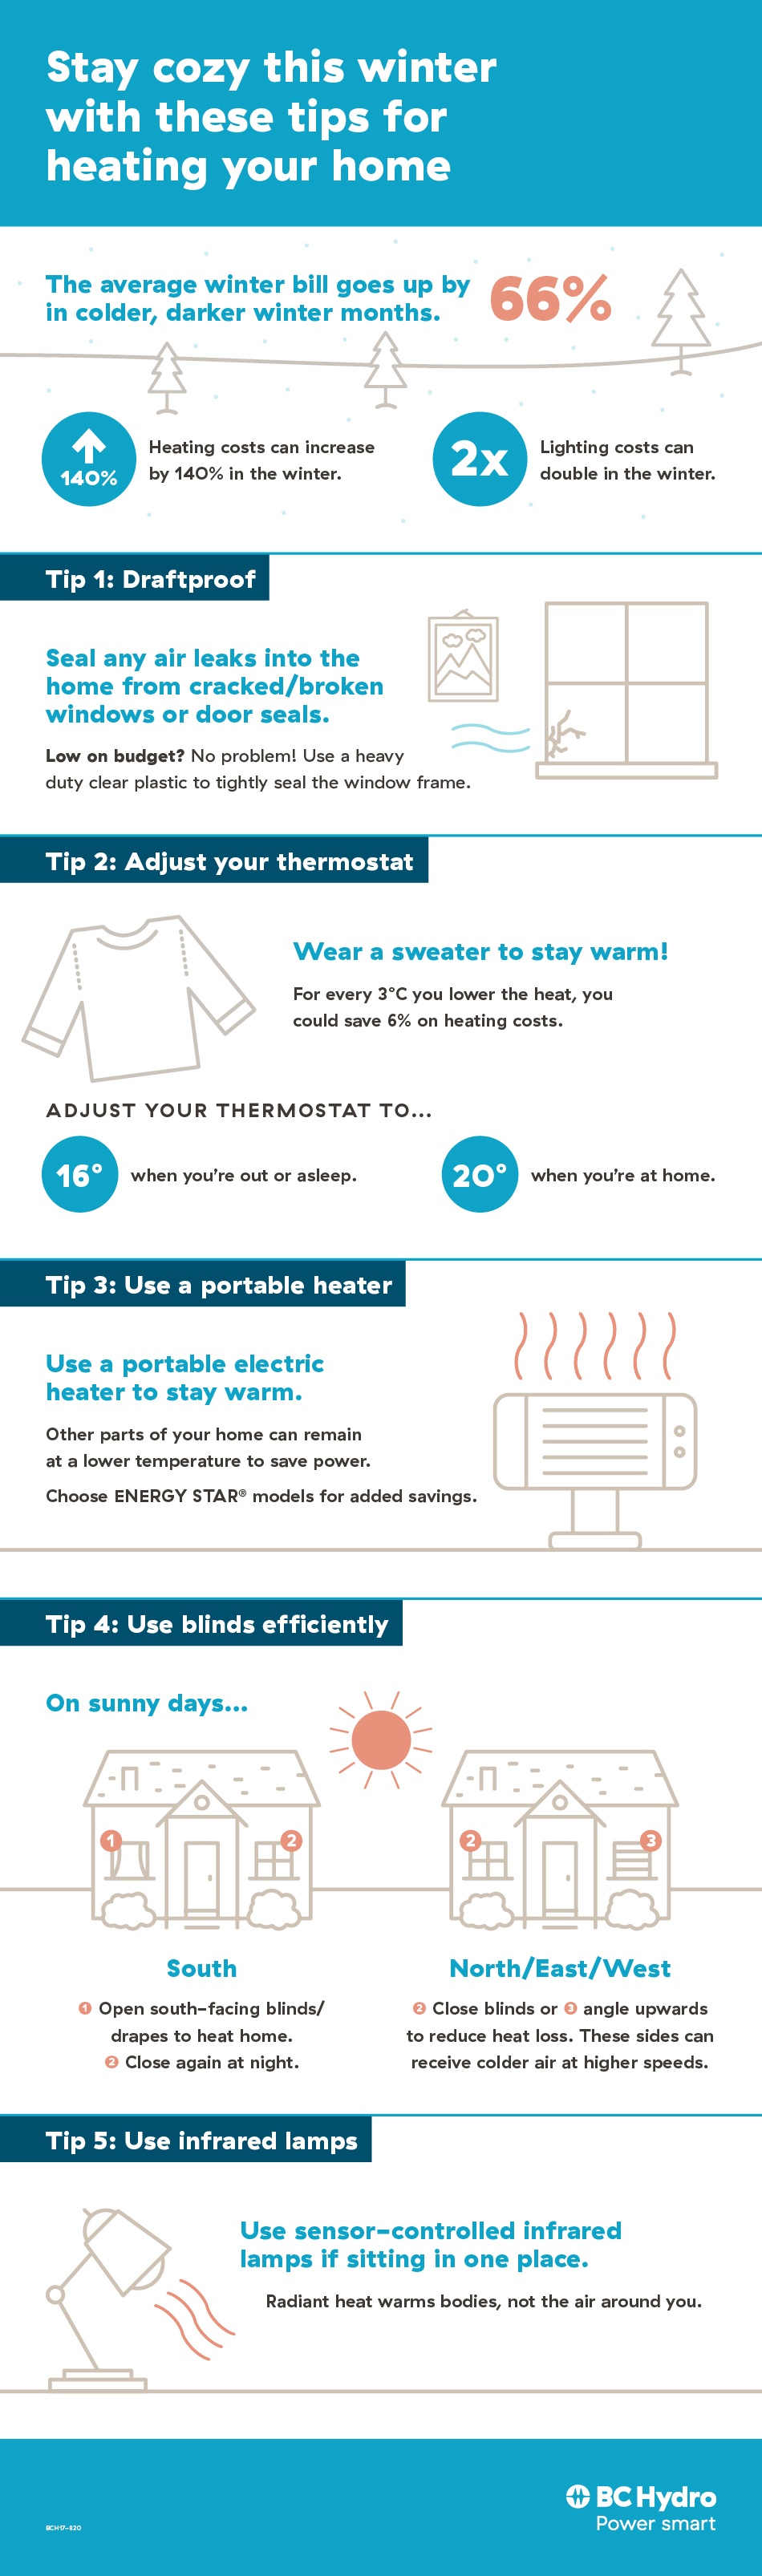 winter-heating-tips-infographic-950x3212.jpg